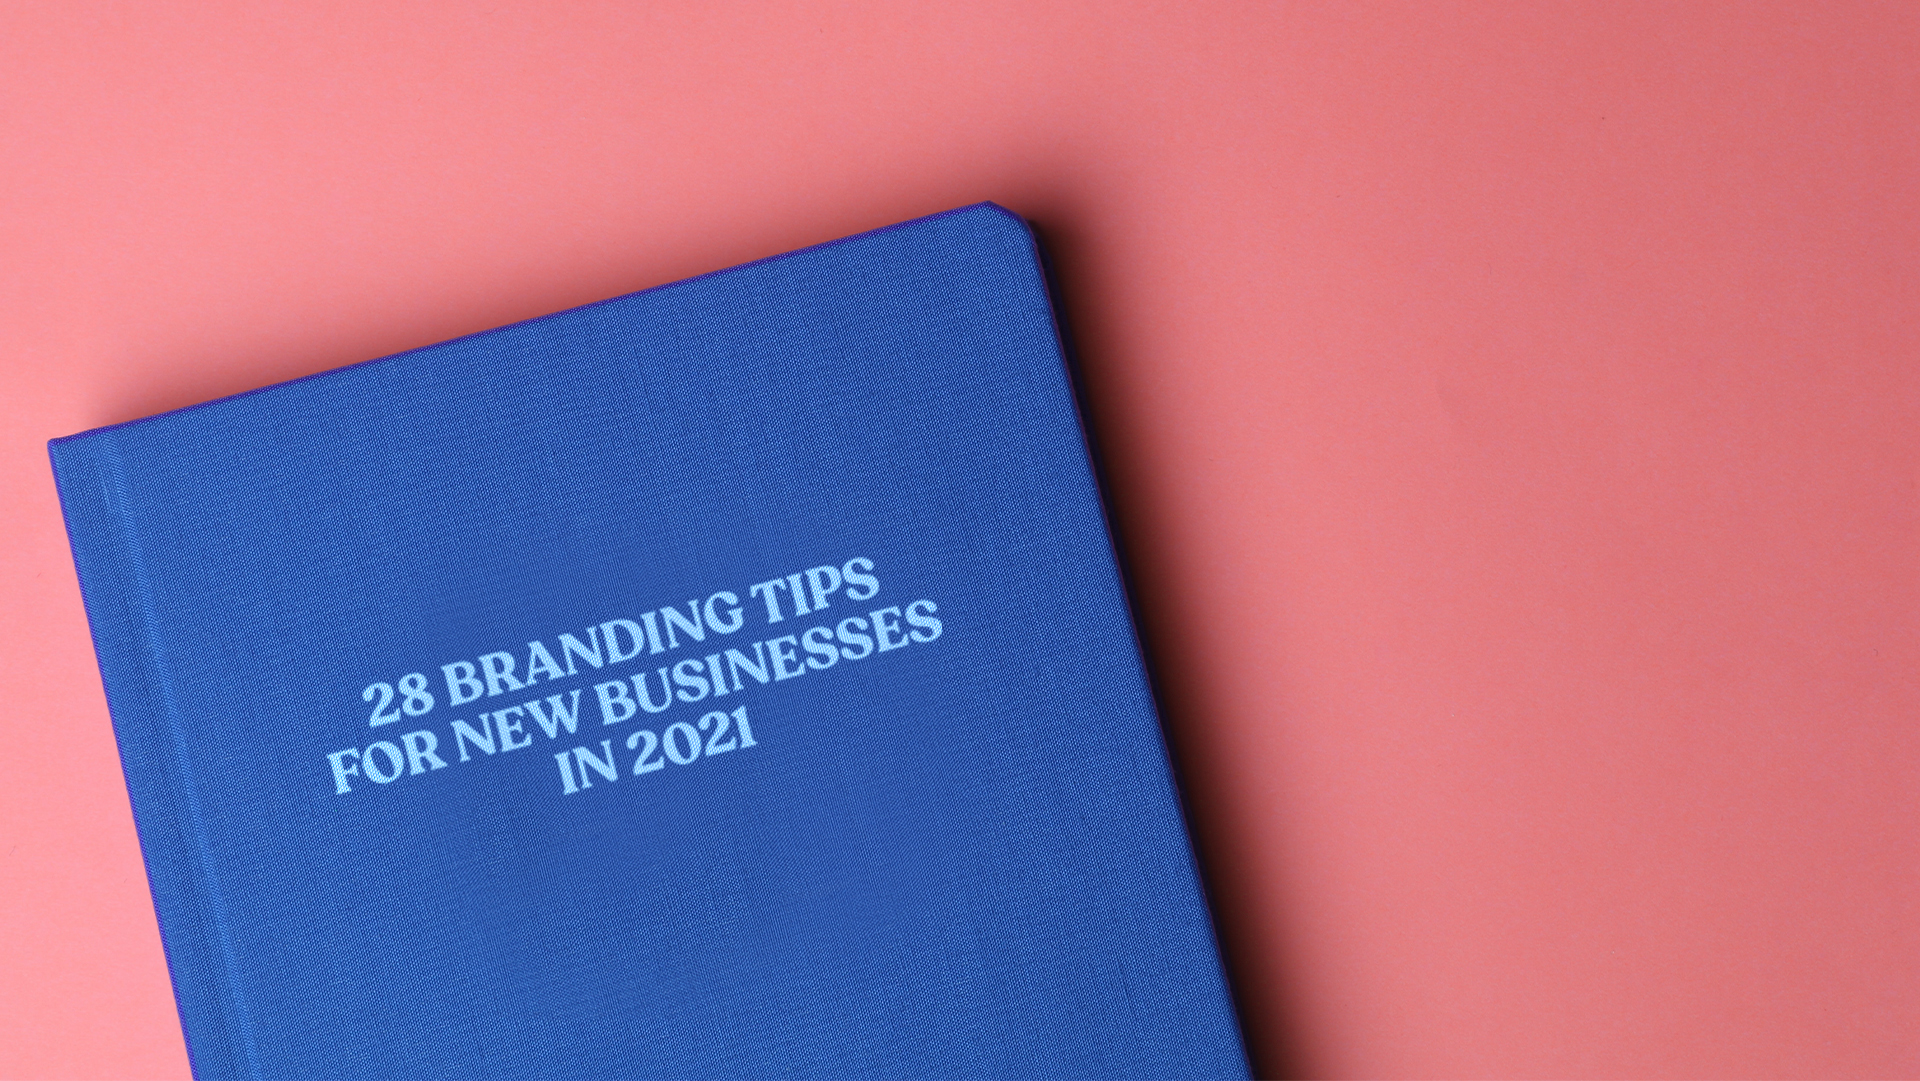 28 Branding Tips for Small Startup Businesses in 2021.